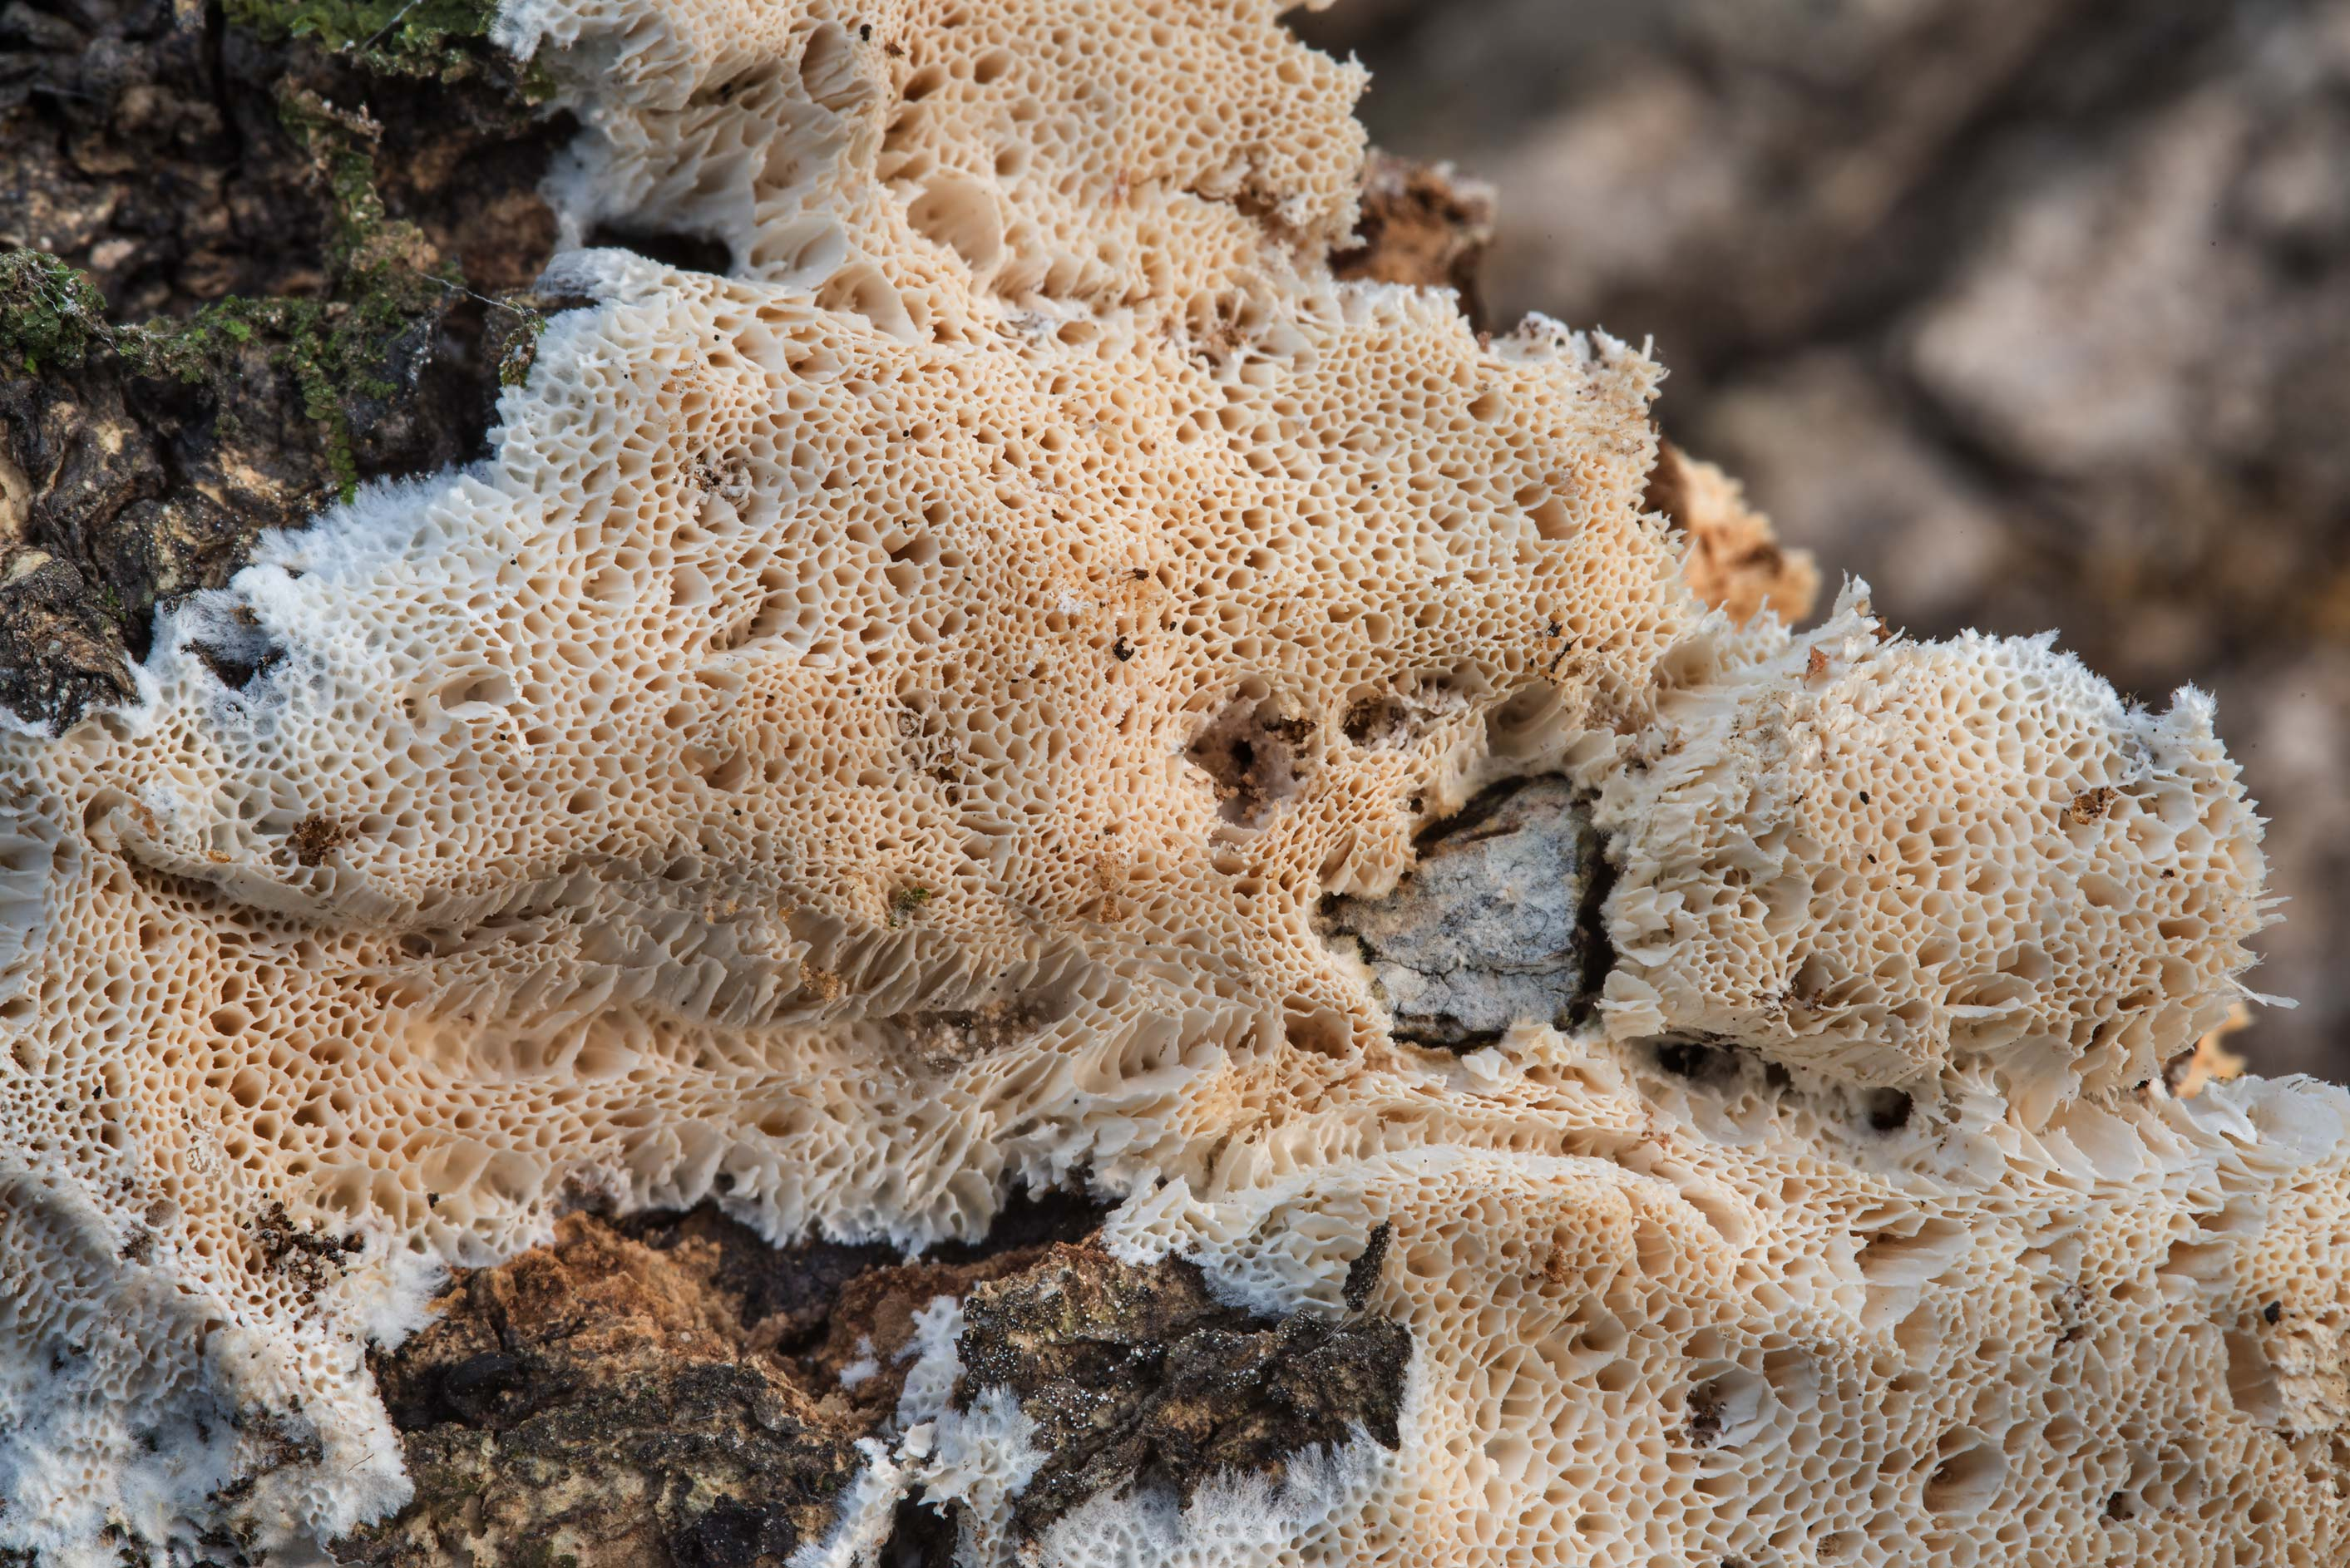 Spreading porous fungus on a dry oak branch in Hensel Park. College Station, Texas